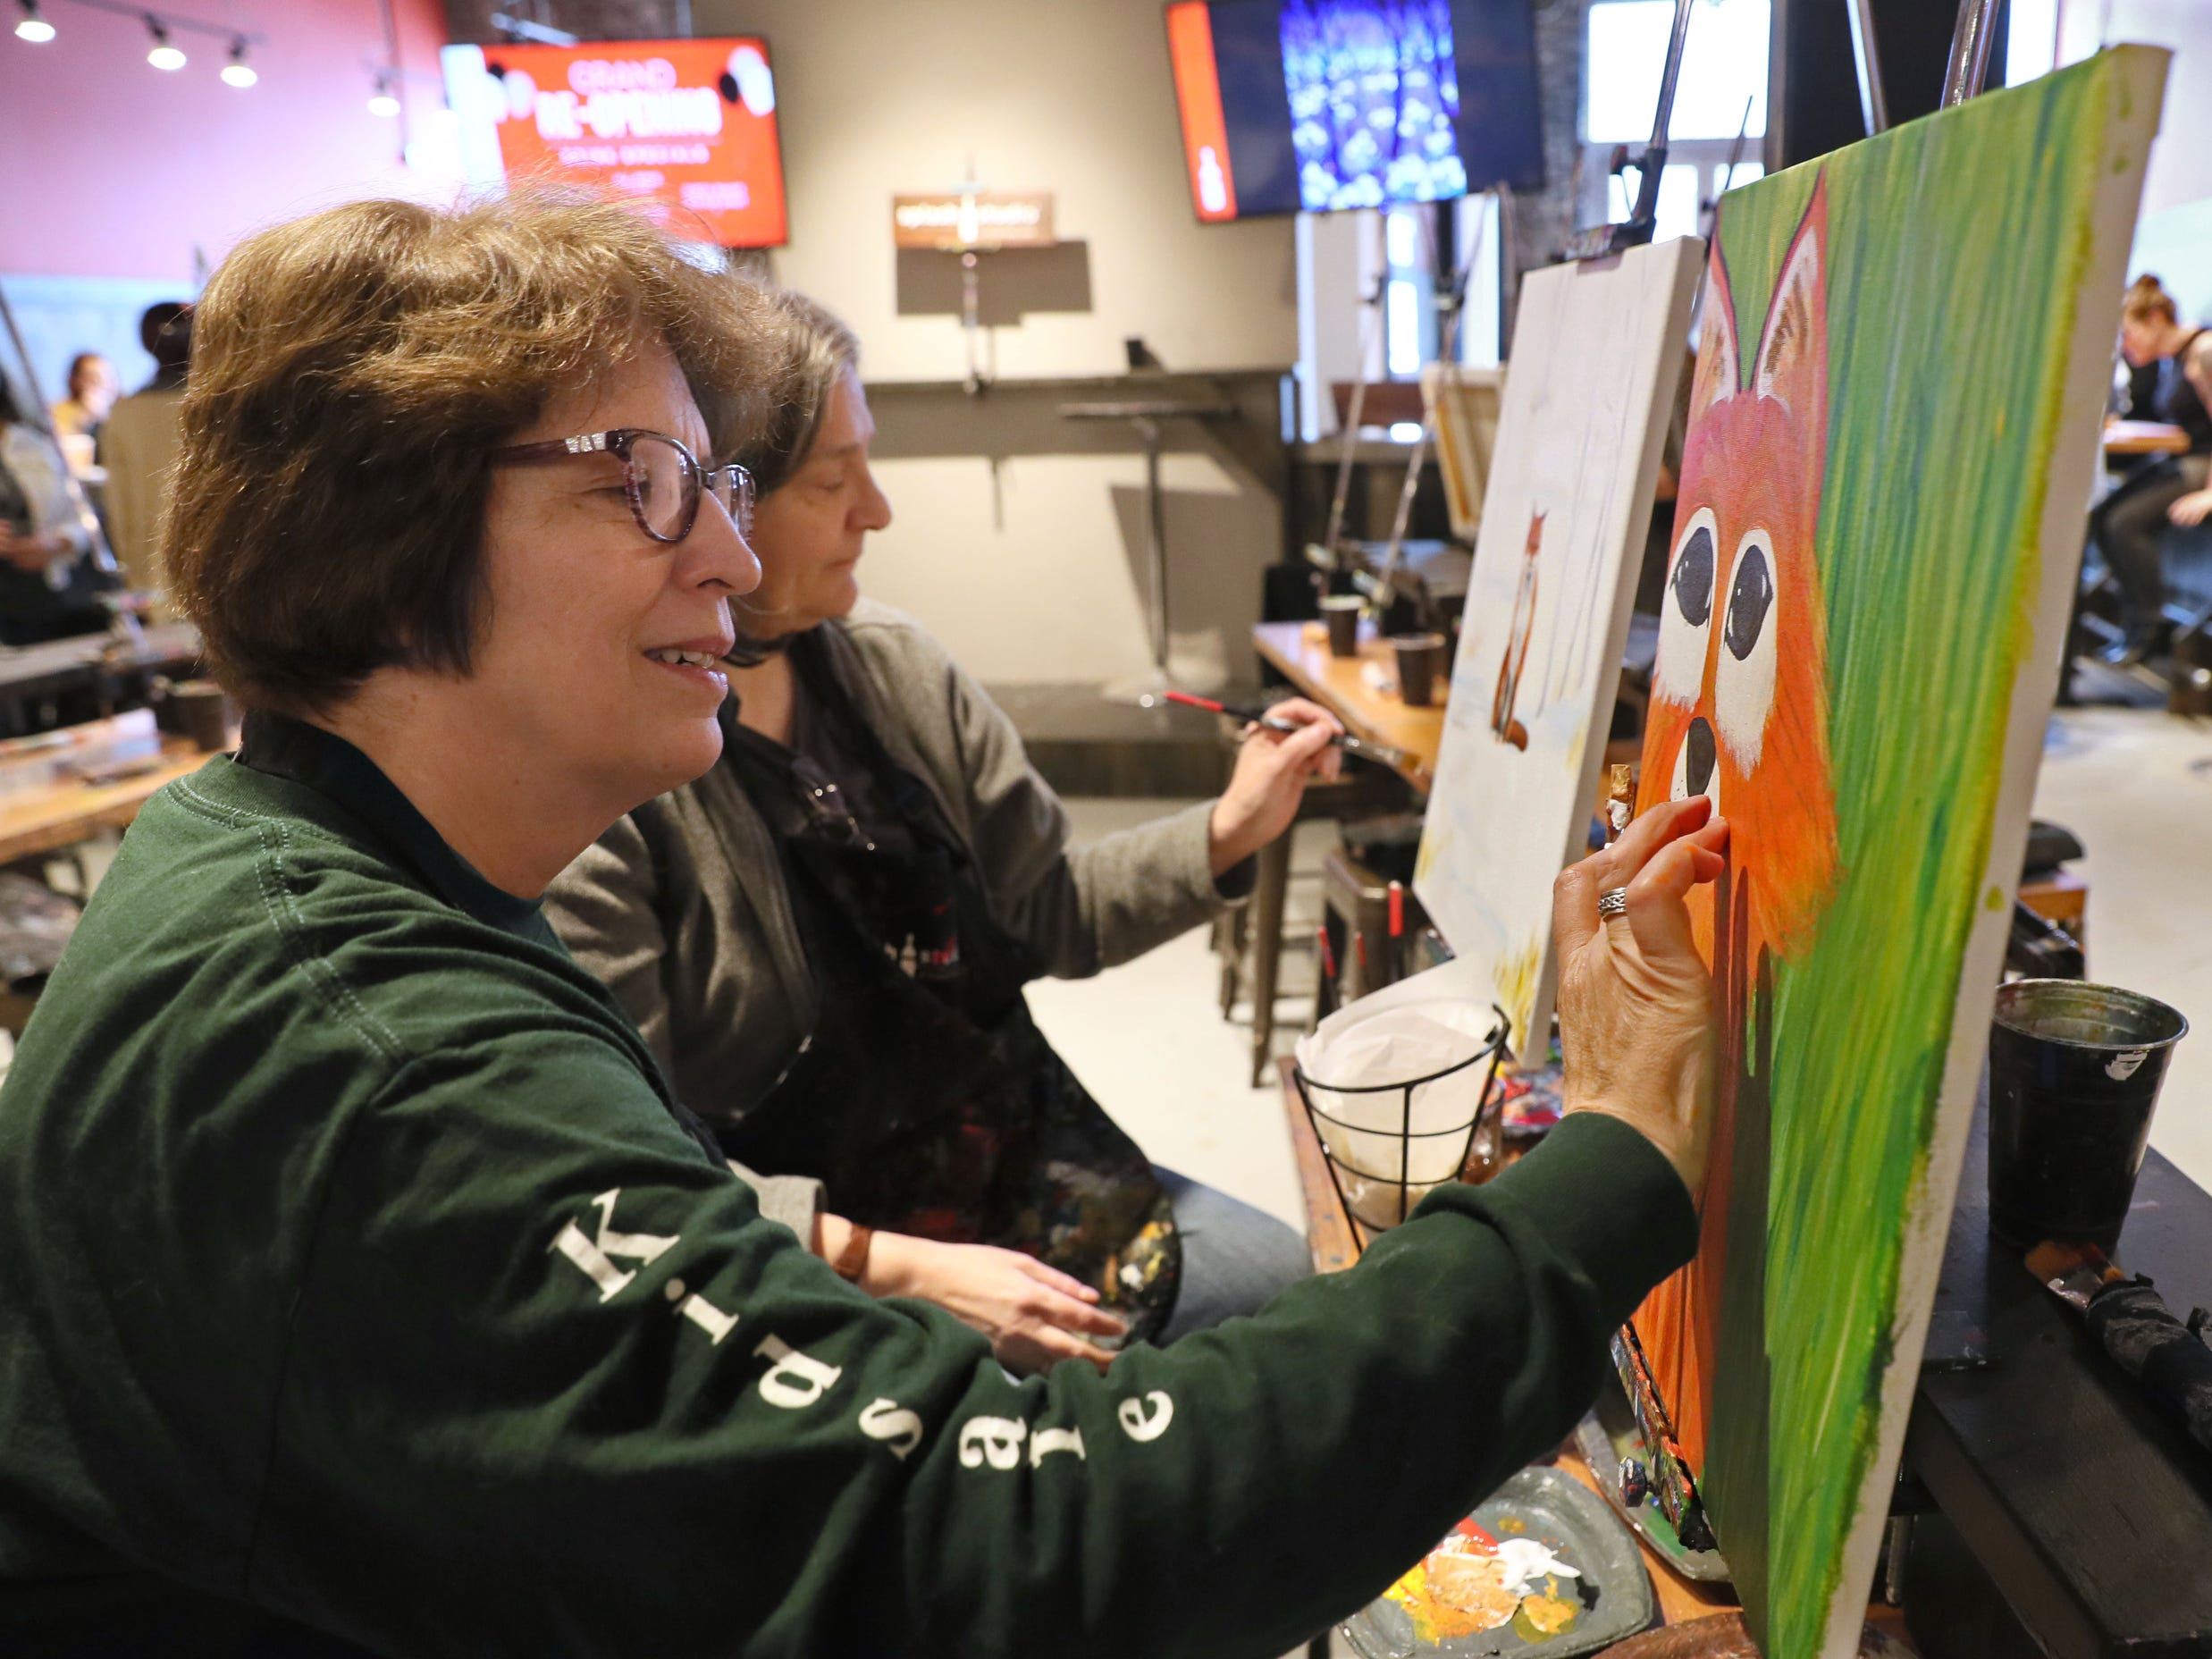 Terri Torbeck of Brookfield (foreground) and her friend, Gillian Simpson (rear) of Fox Point, paint pictures of foxes. Splash Studio moved from the Third Ward to 1815 E. Kenilworth Place on the east side of Milwaukee.  On Sunday, they held a grand reopening event.